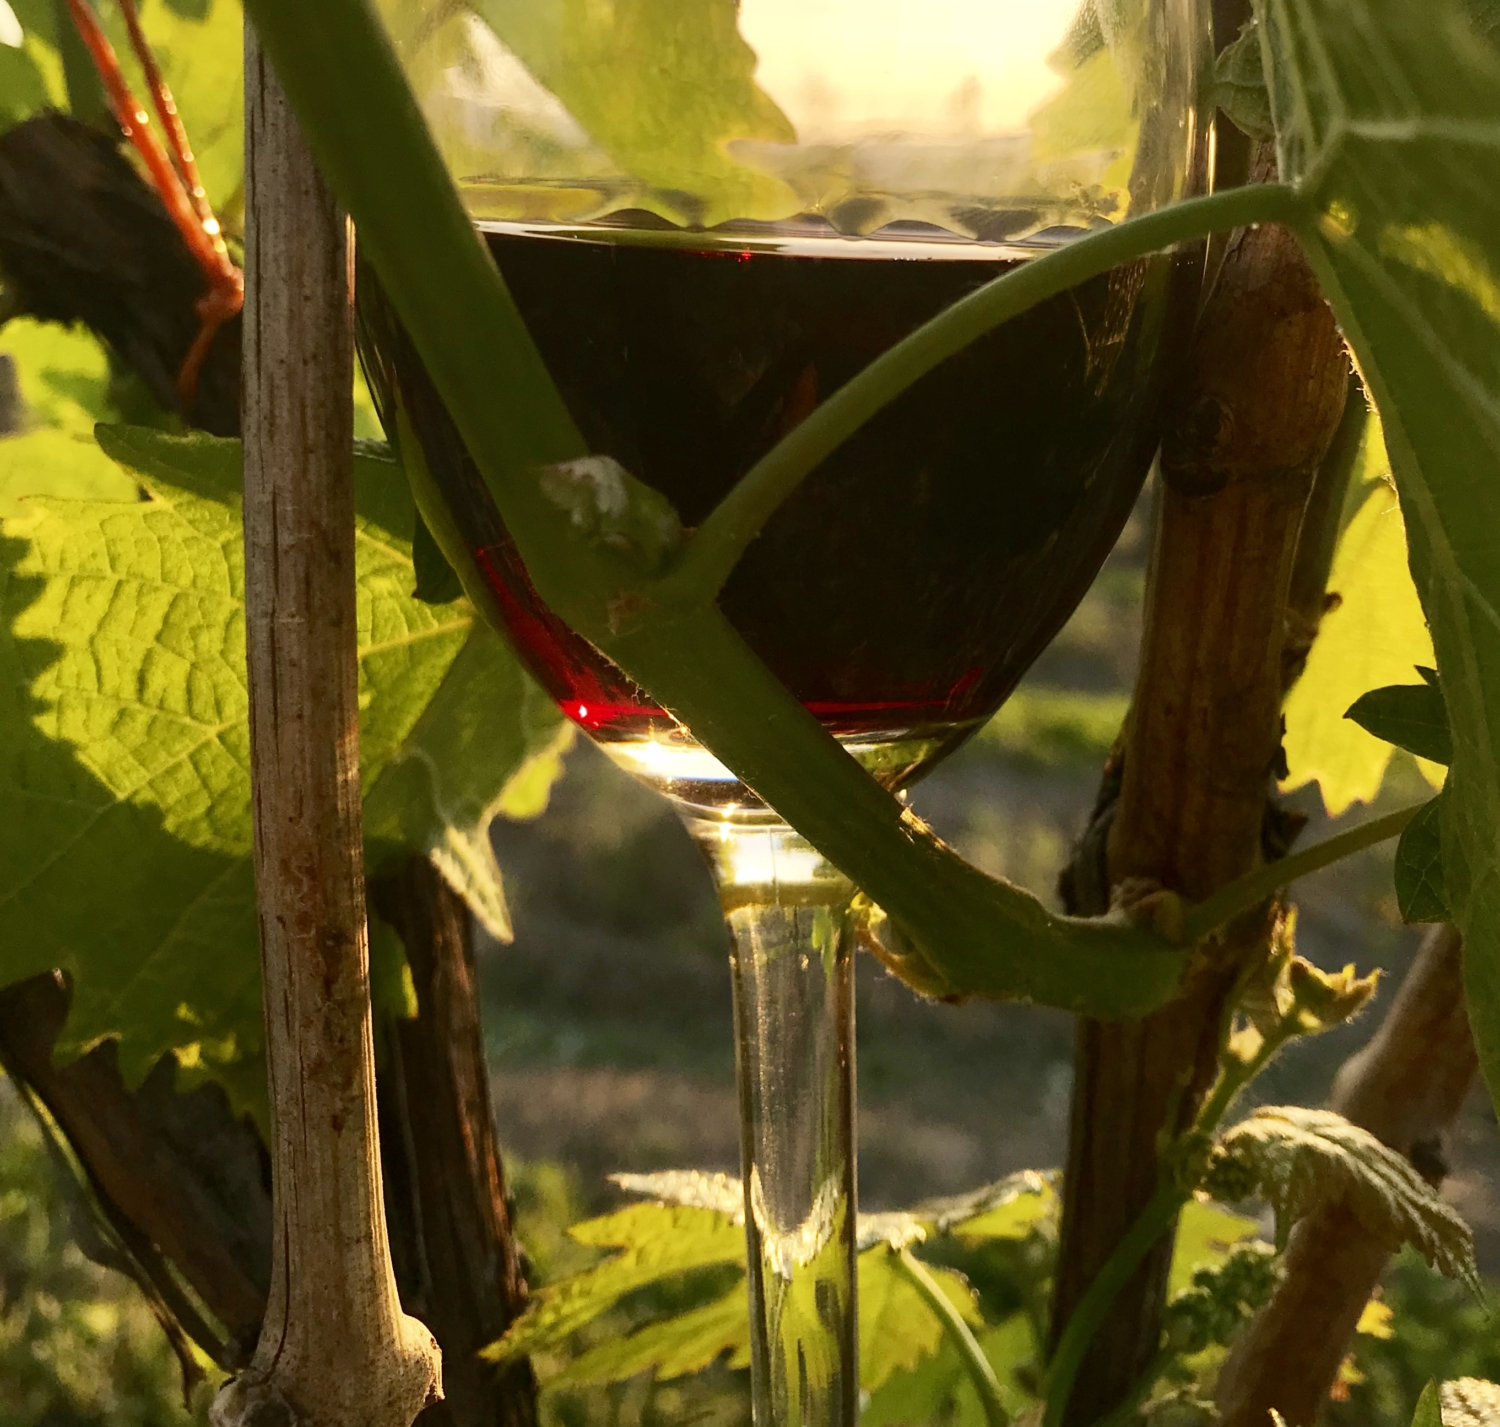 Tillinghast Manor - Glass of Red Wine in grape vines